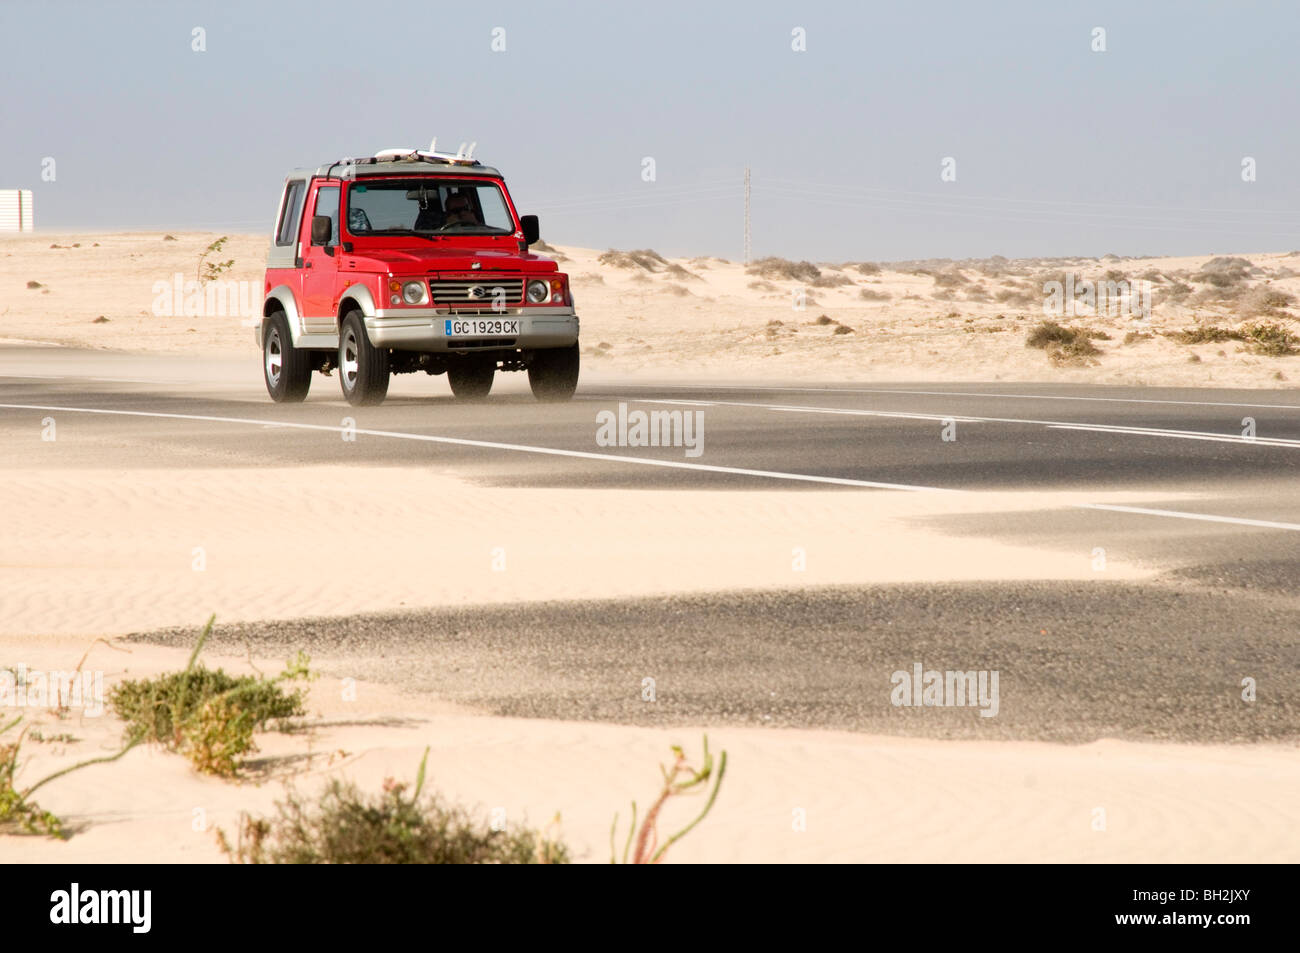 desert road roads sand sandy road slippery surface surfaces driver driving in on dust dusty wind swept blown across - Stock Image